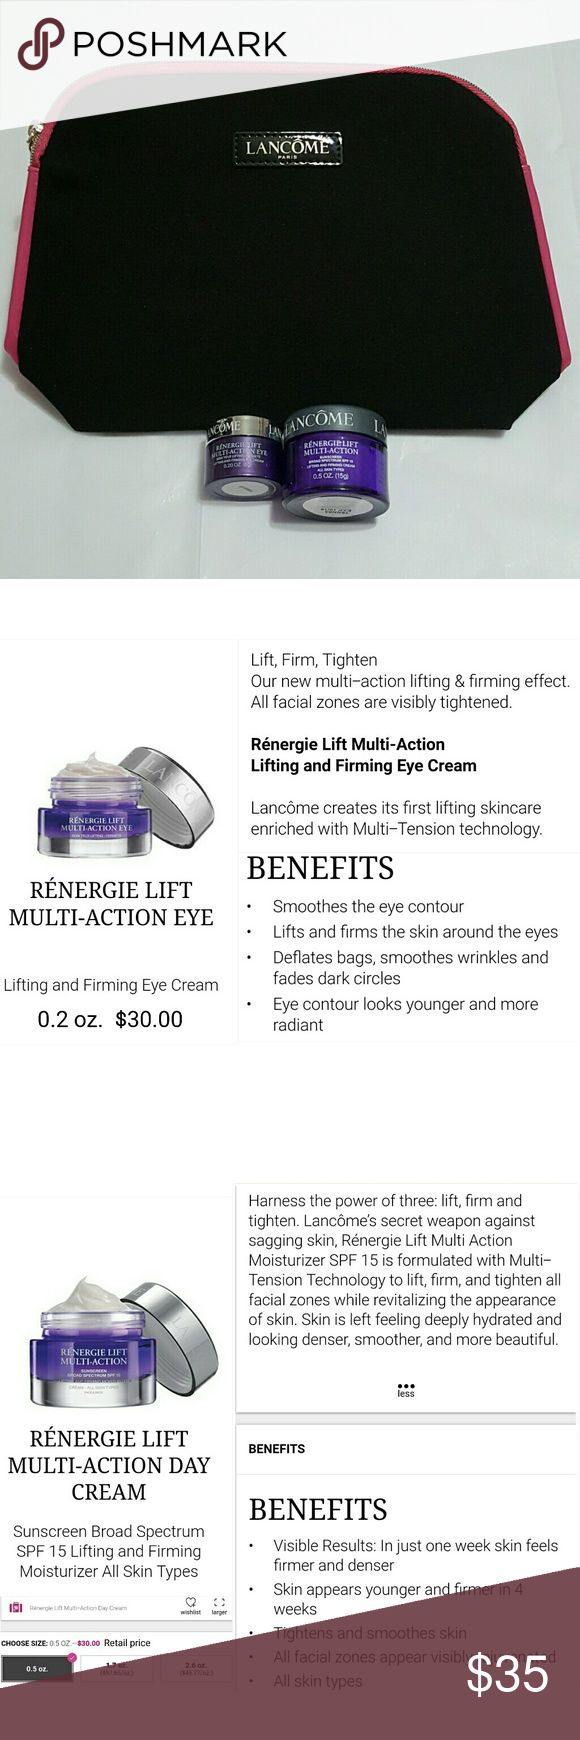 New! Lancome Renergie Multi-Action Eye & Day Cream New!  Lancome Renergie Lift Multi-Action Eye Cream, Day Cream, and makeup bag.  **1 - 0.2 oz. Renergie Lift Multi-Action Eye Cream  Lifts and firms the skin around eyes, deflates bag, smoothes  wrinkles and fades dark circles, smoothes the eye contour.  **1 - 0.5 oz. Renergie Lift Multi-Action Day Cream SPF 15  Visible results:  In just one week skins feel firmer and denser,  tightens and smoothes skin, all facial zone appears visibly…